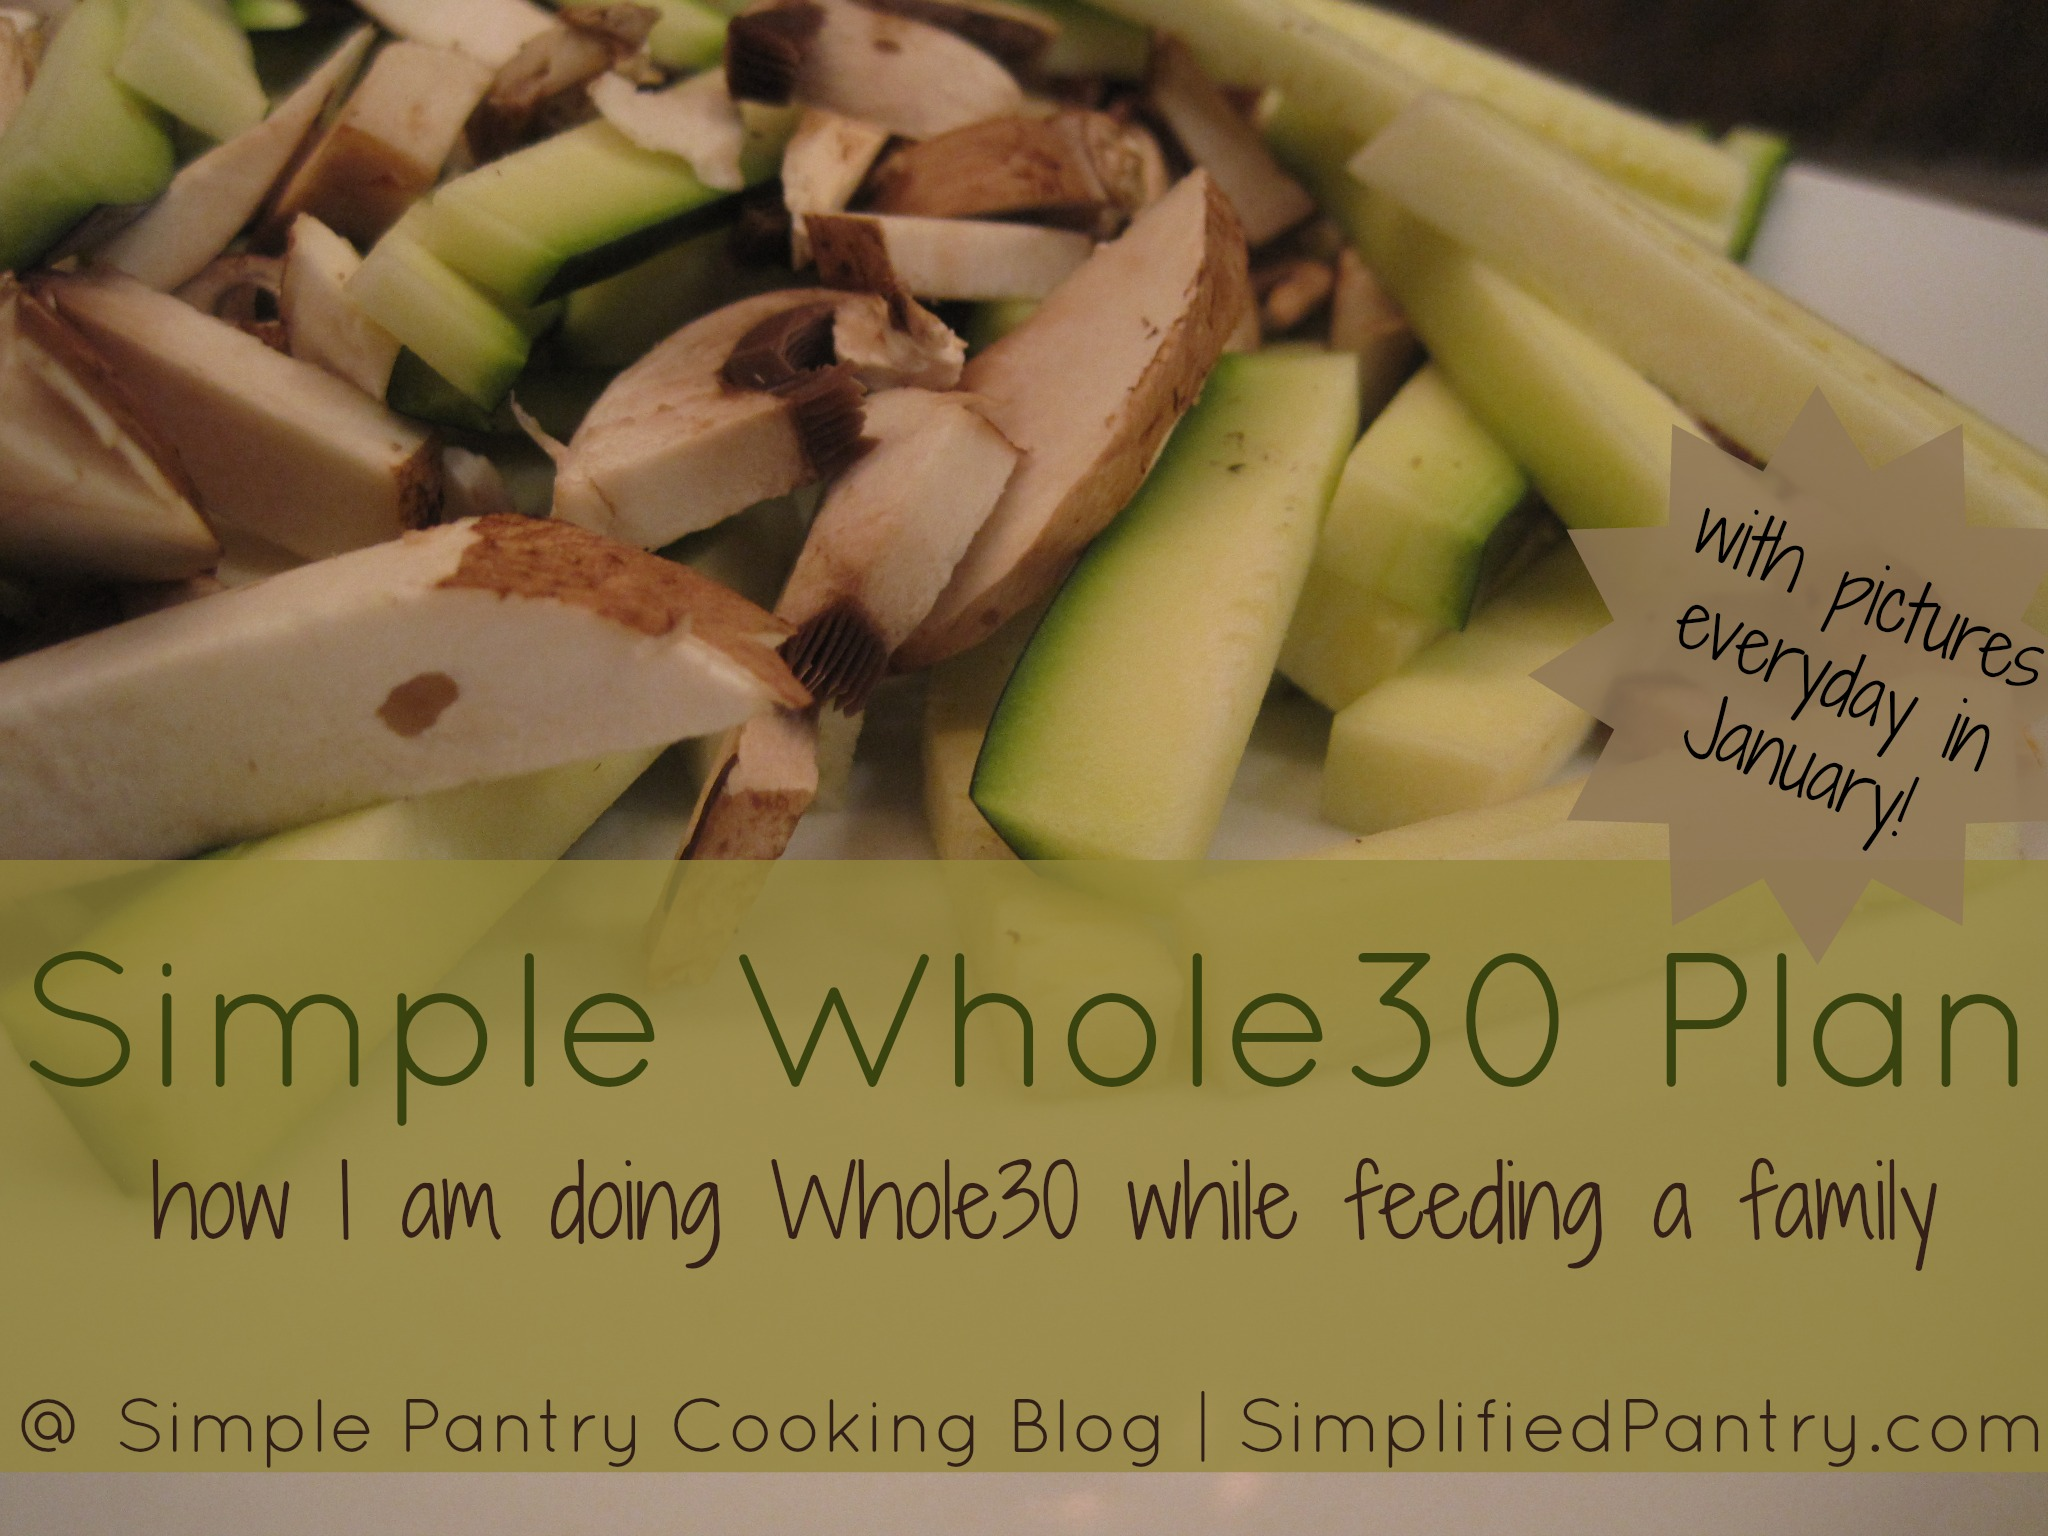 Simple Whole30 Plan